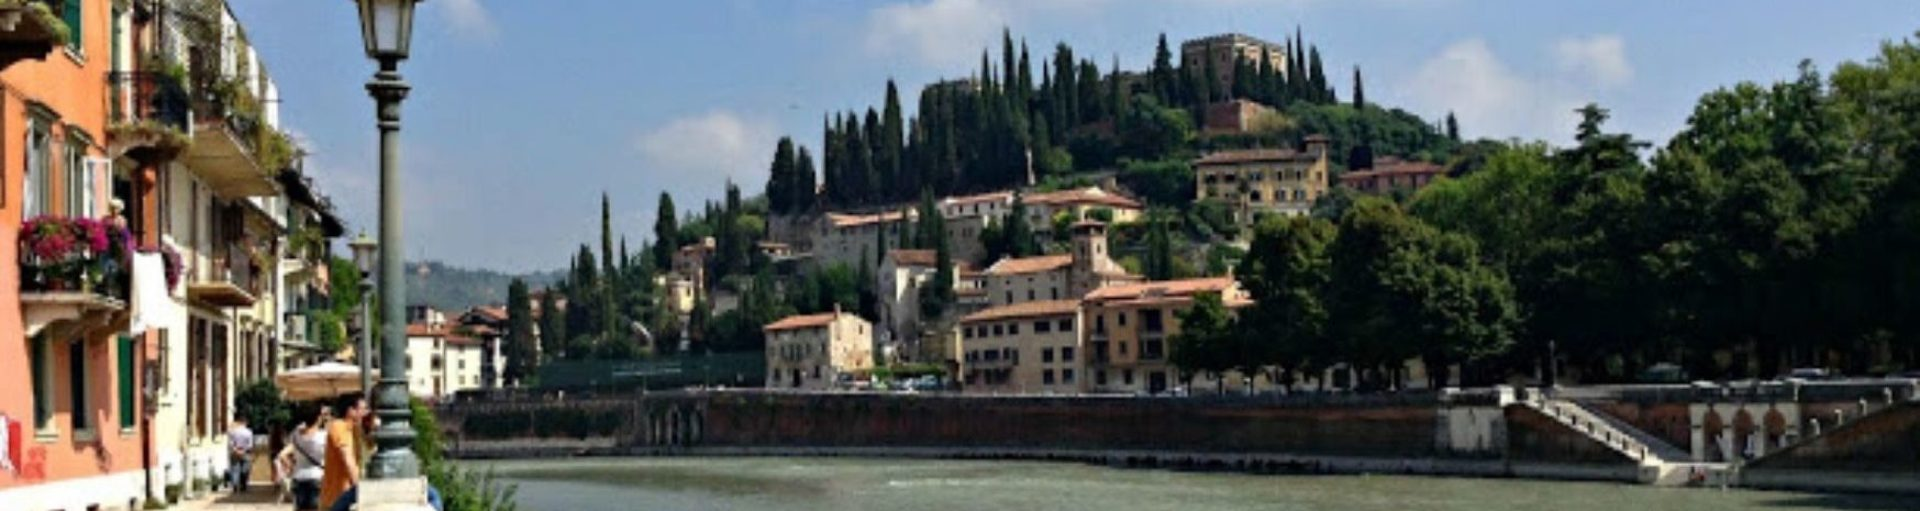 One-day itinerary in Verona, the city of Romeo and Juliet